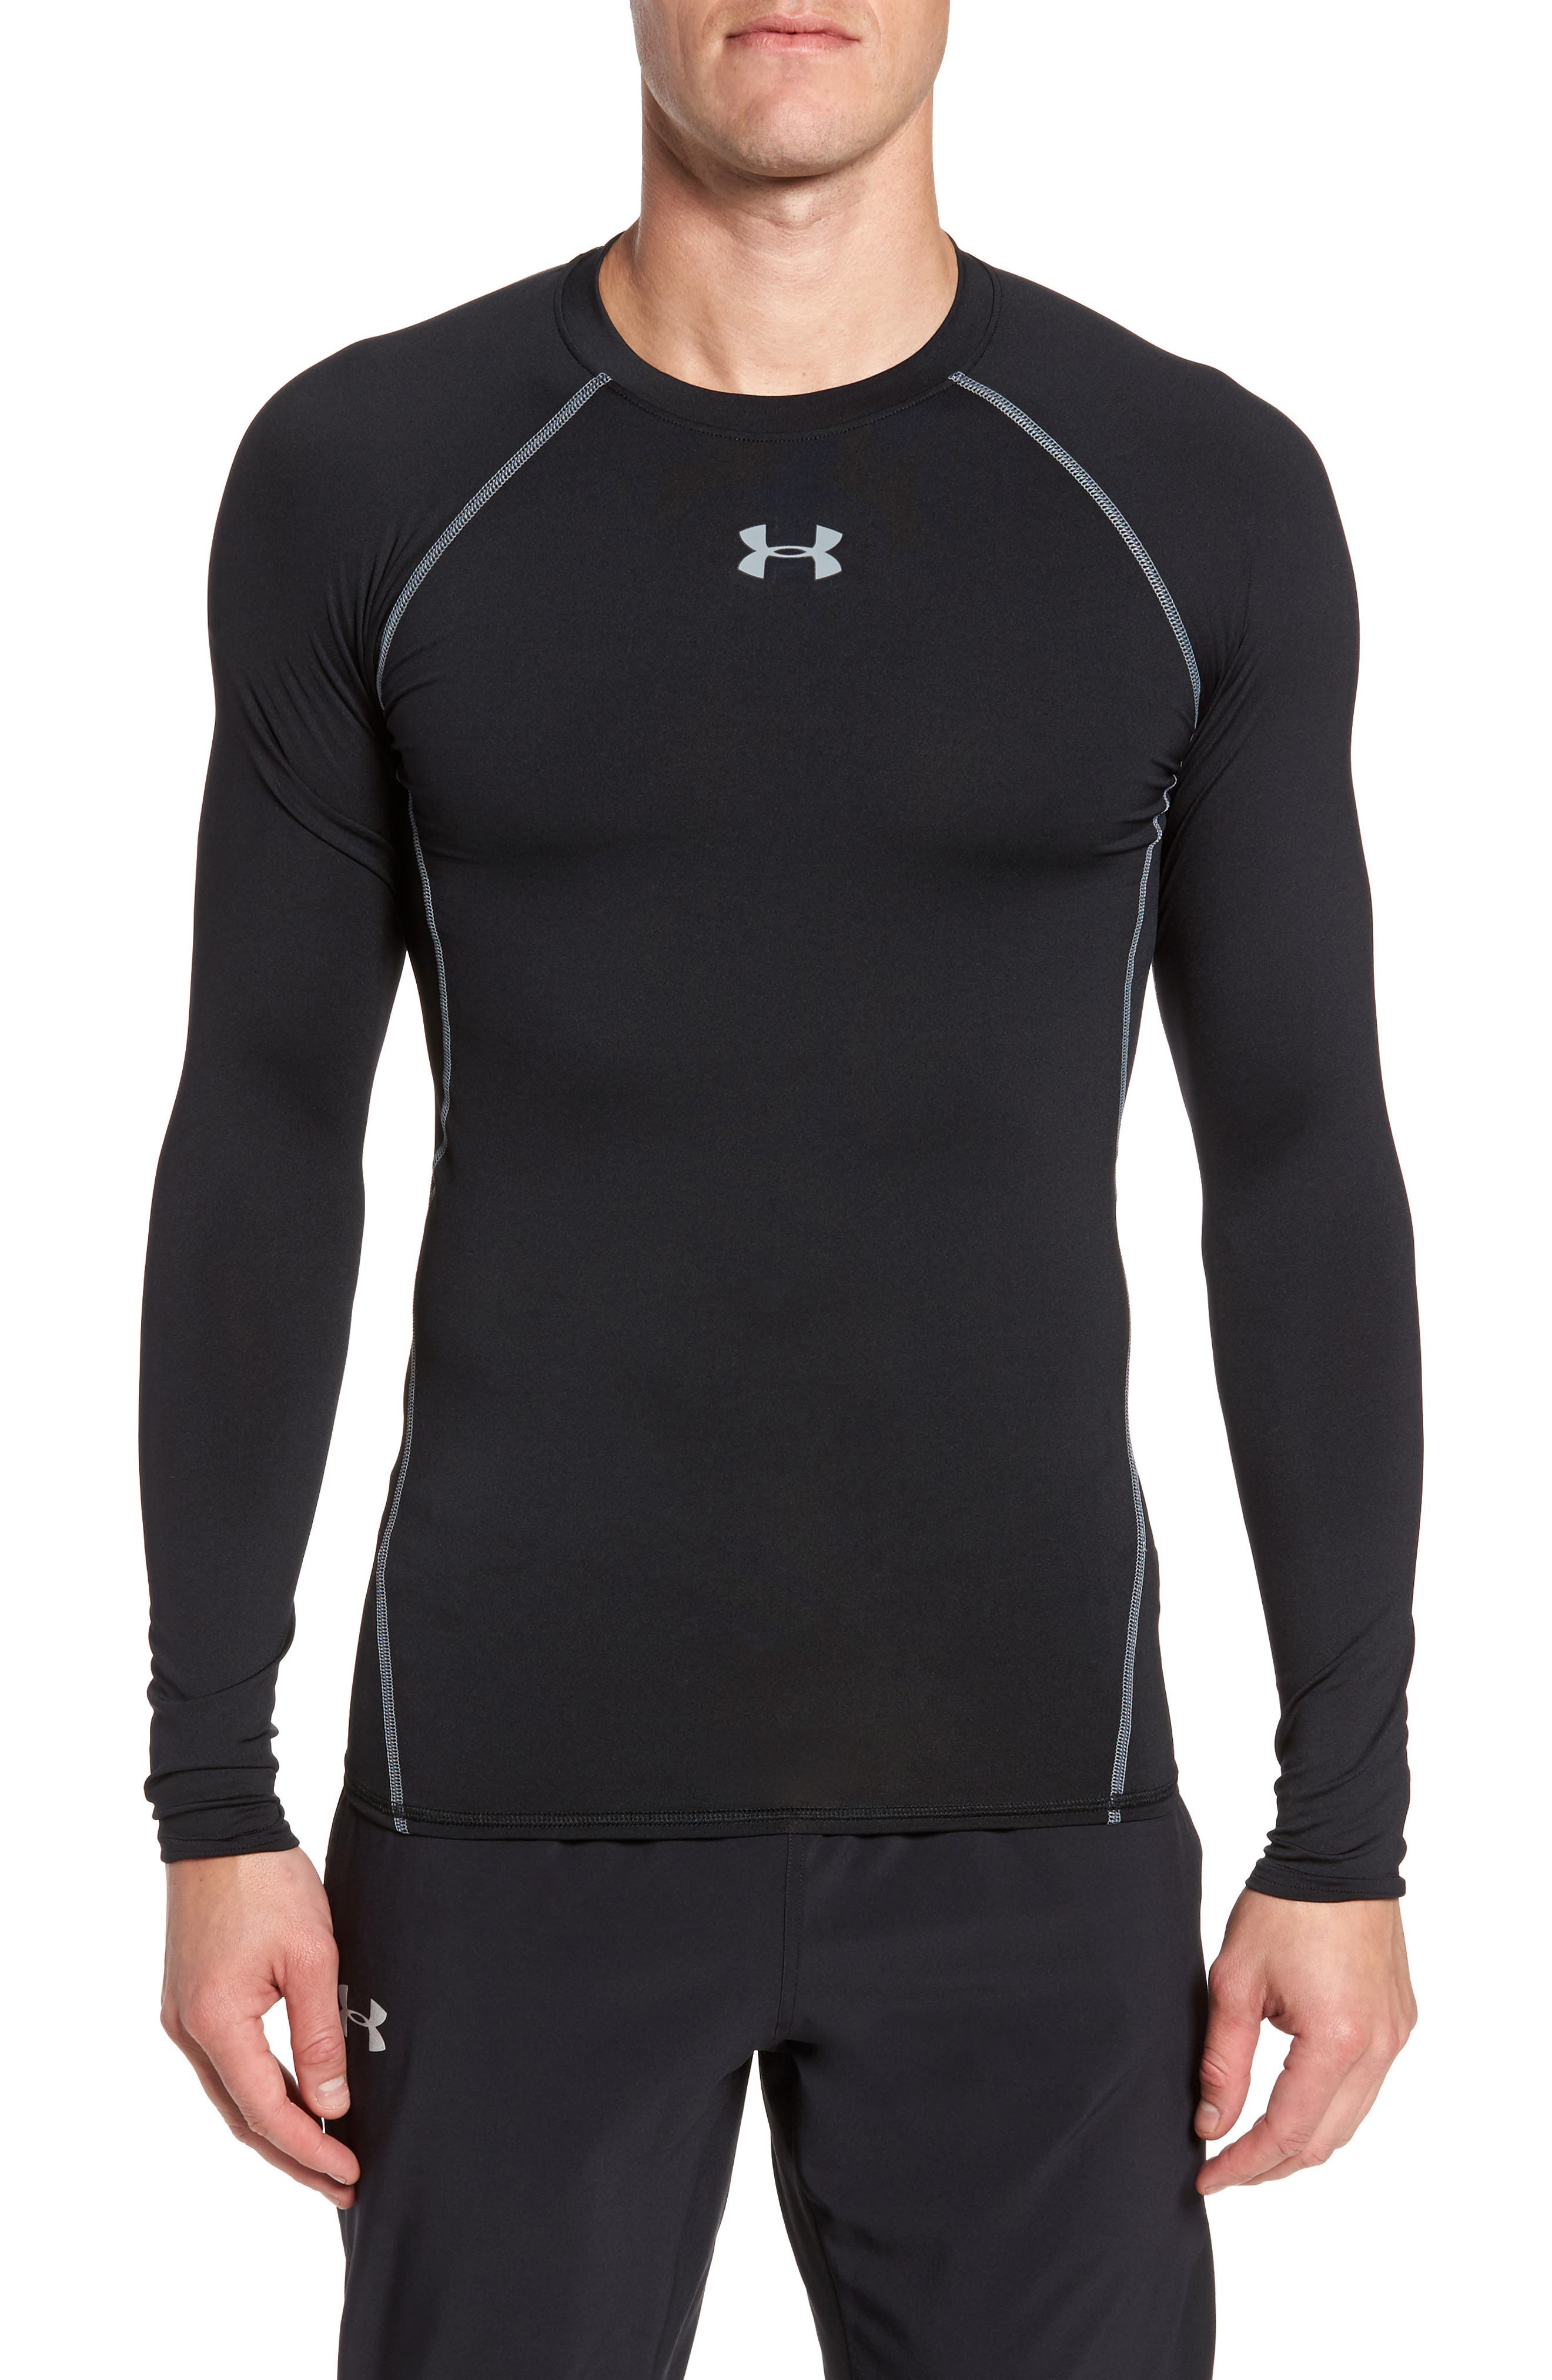 HeatGear<sup>®</sup> Compression Fit Long Sleeve T-Shirt,                         Main,                         color, BLACK/ STEEL